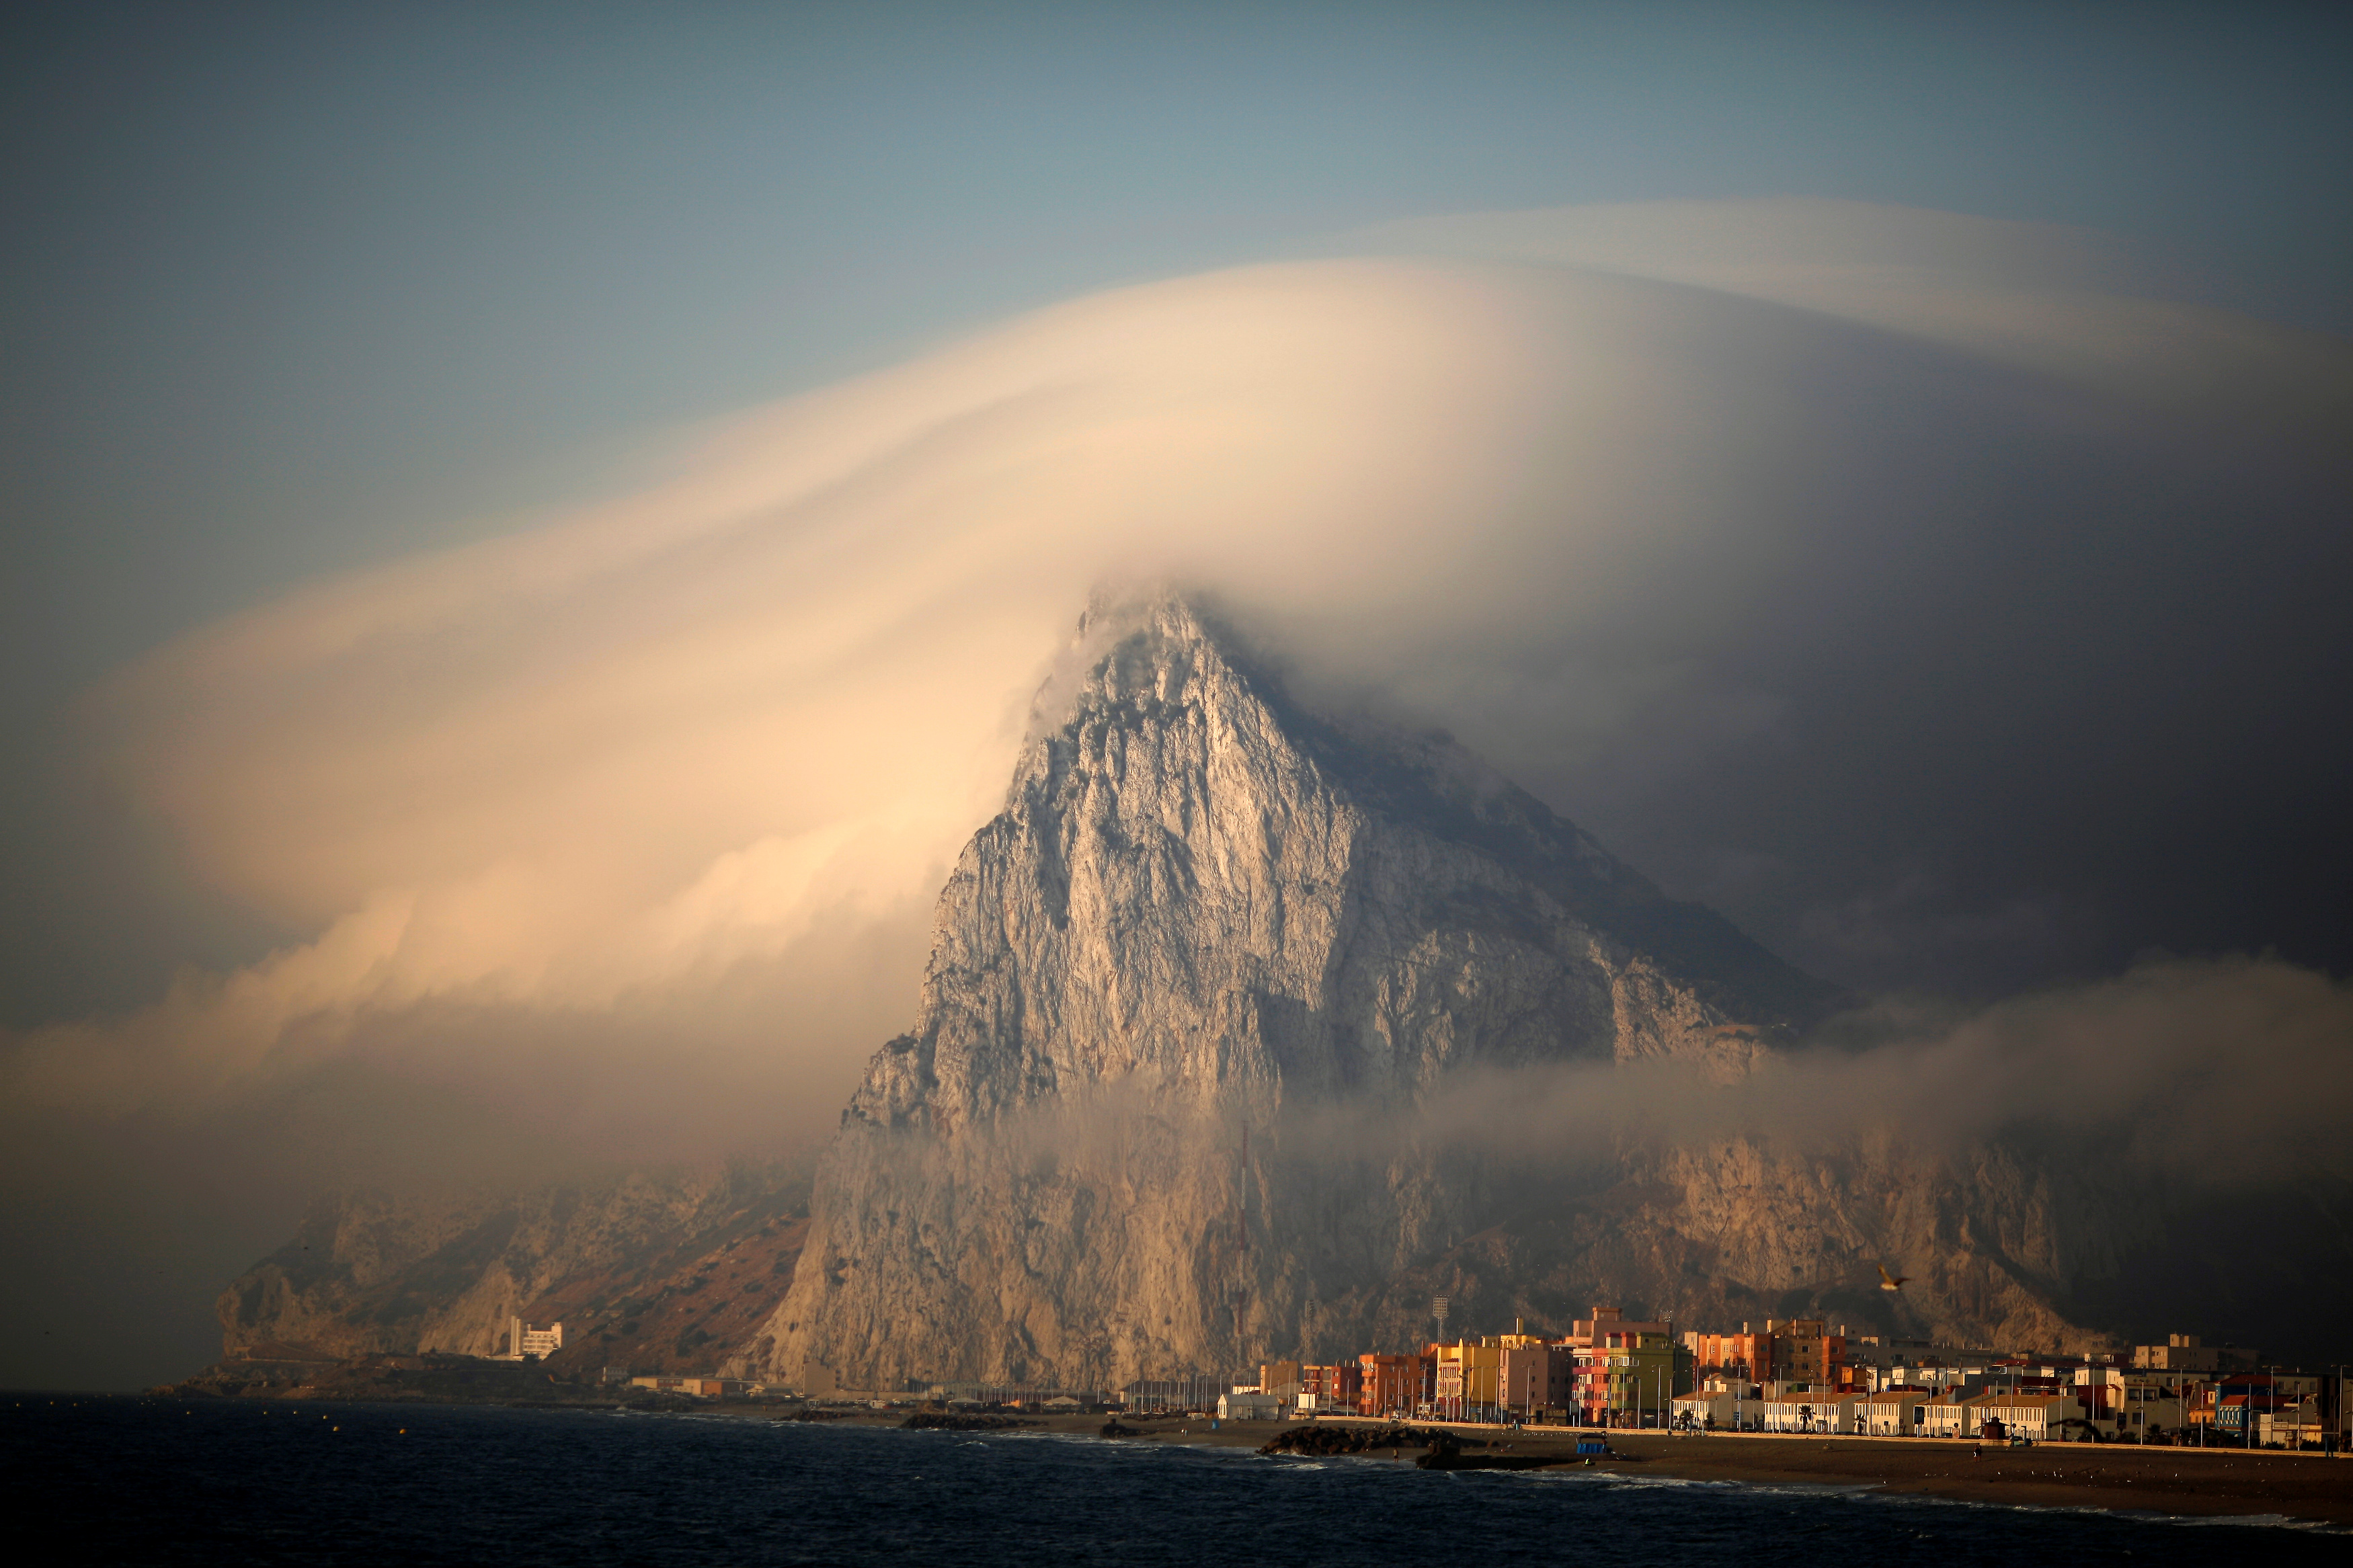 FILE PHOTO: A cloud partially covers the tip of the Rock of the British territory of Gibraltar at sunrise from La Atunara port before Spanish fishermen sail in their fishing boats with their relatives to take part in a protest at an area of the sea where an artificial reef was built by Gibraltar using concrete blocks, in Algeciras bay, La Linea de la Concepcion in southern Spain August 18, 2013. REUTERS/Jon Nazca